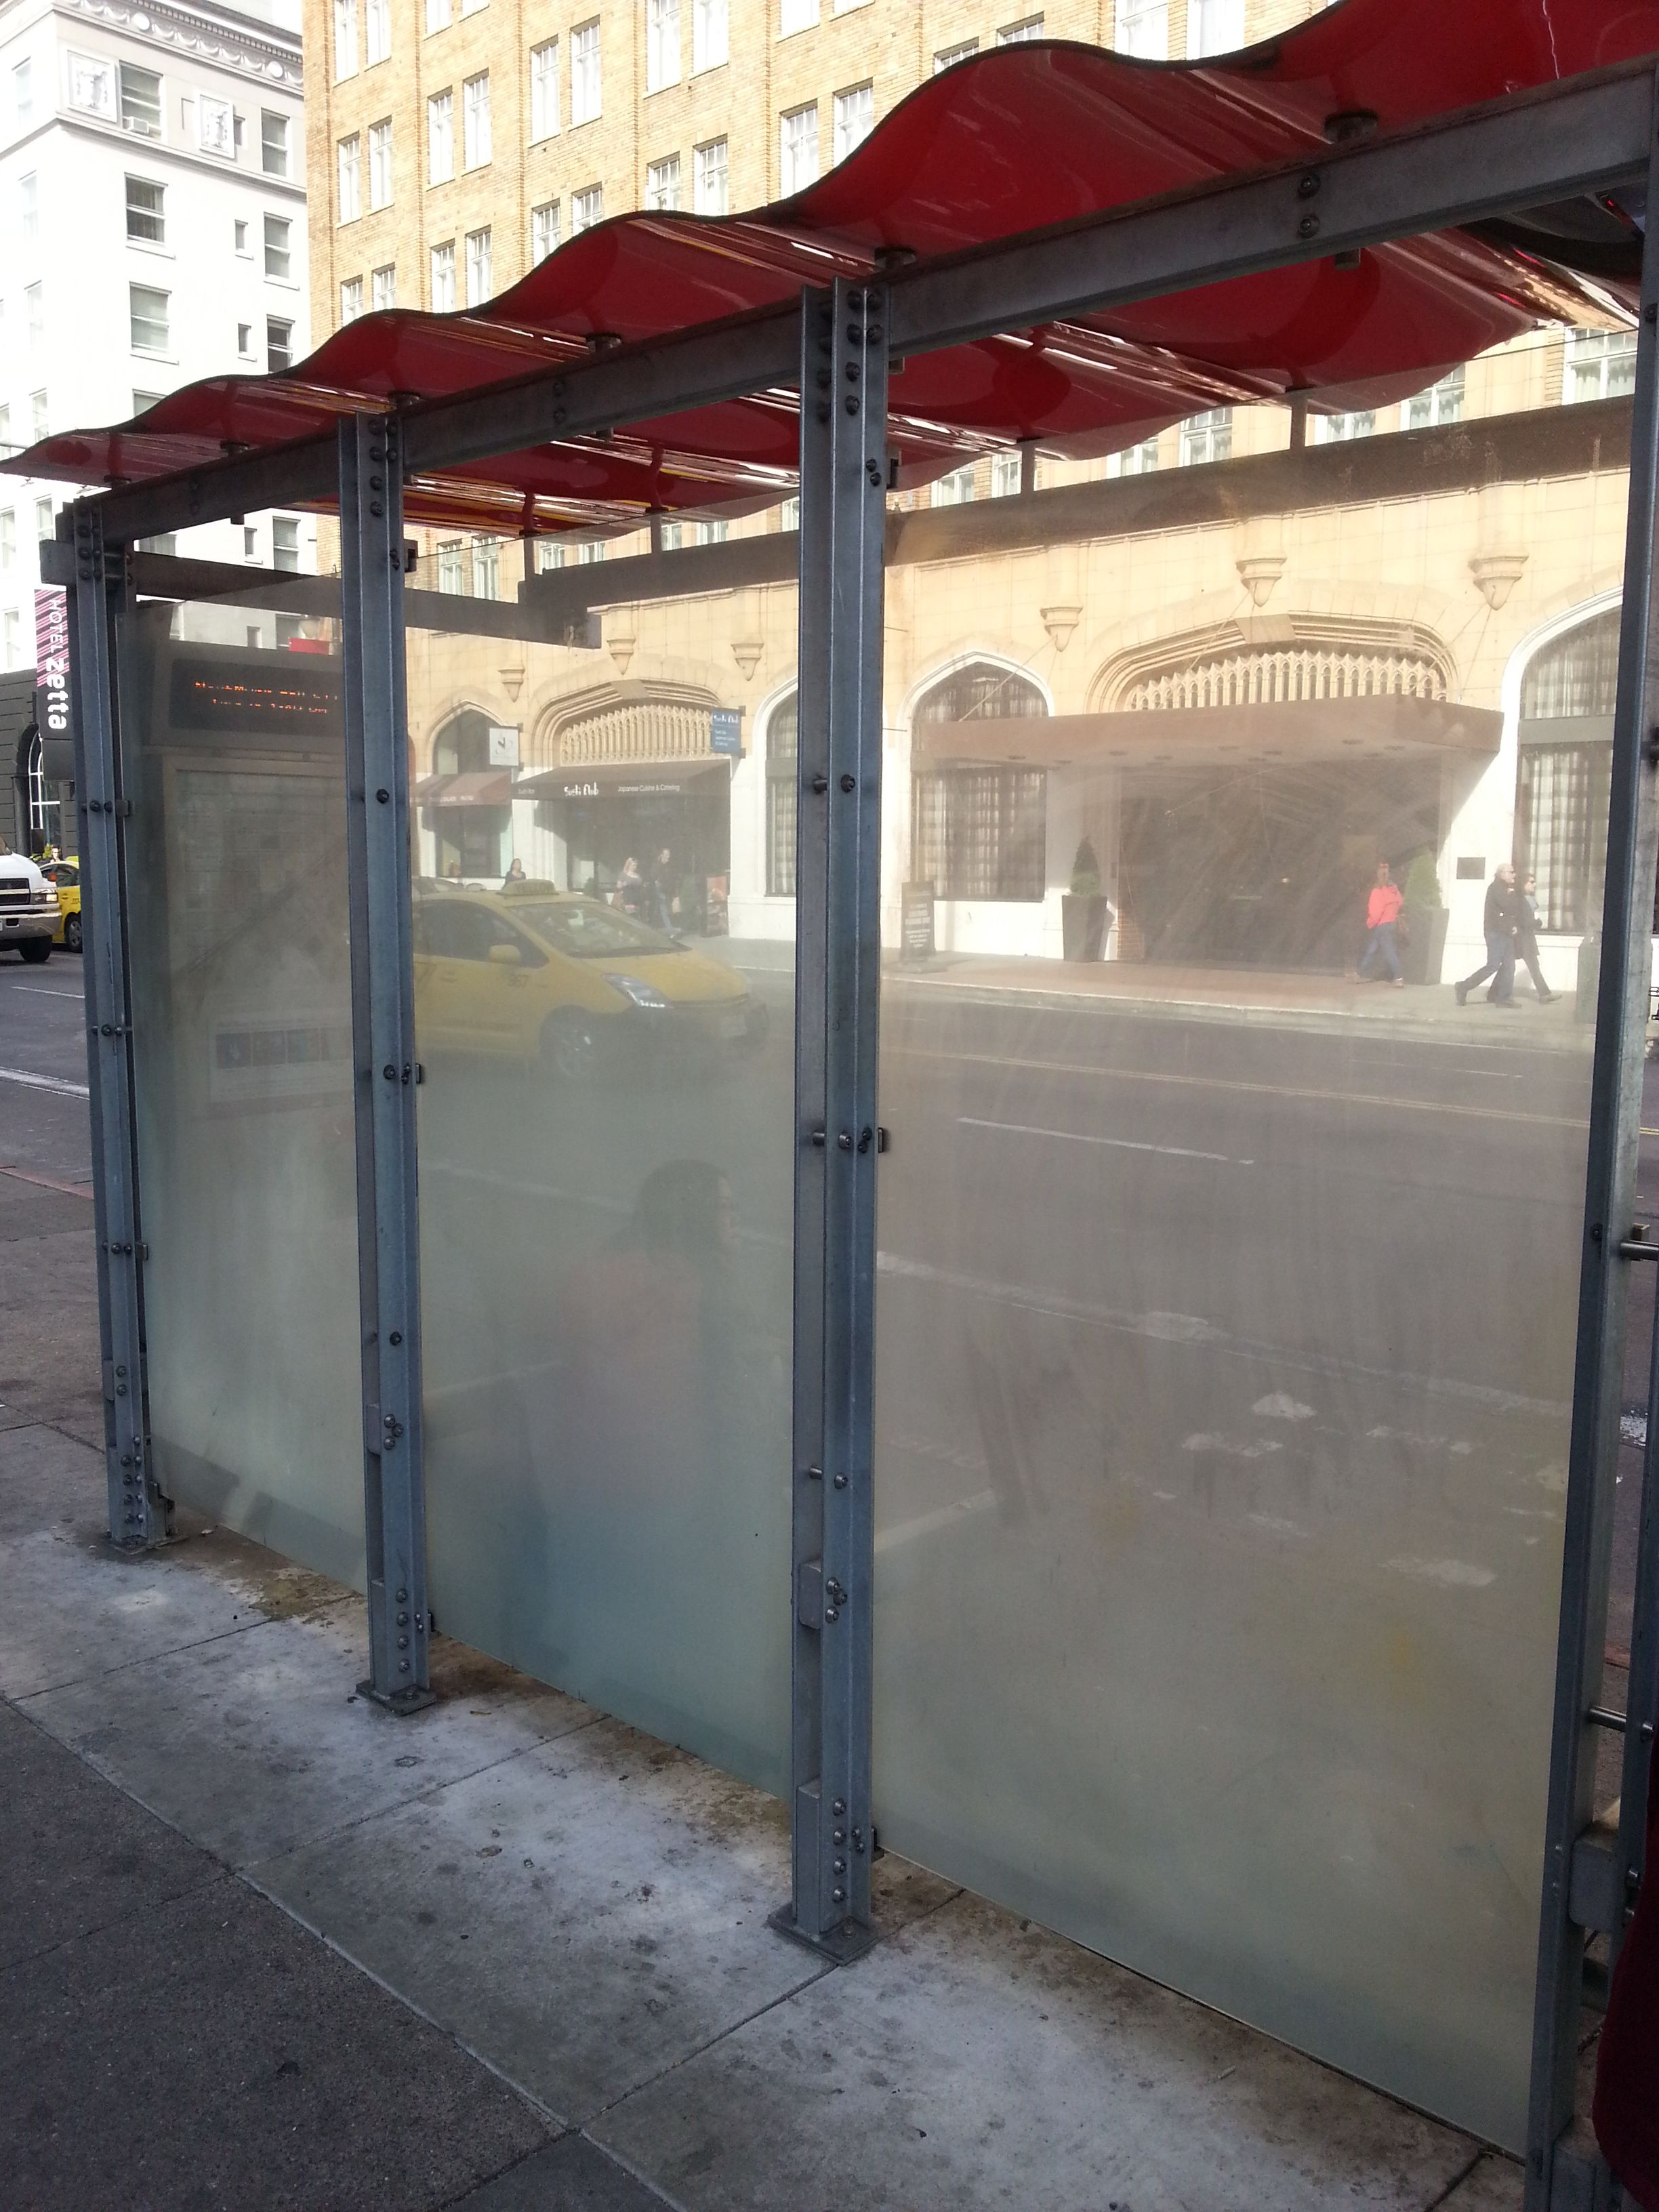 Empty space on Bus shelter that would be interesting to use